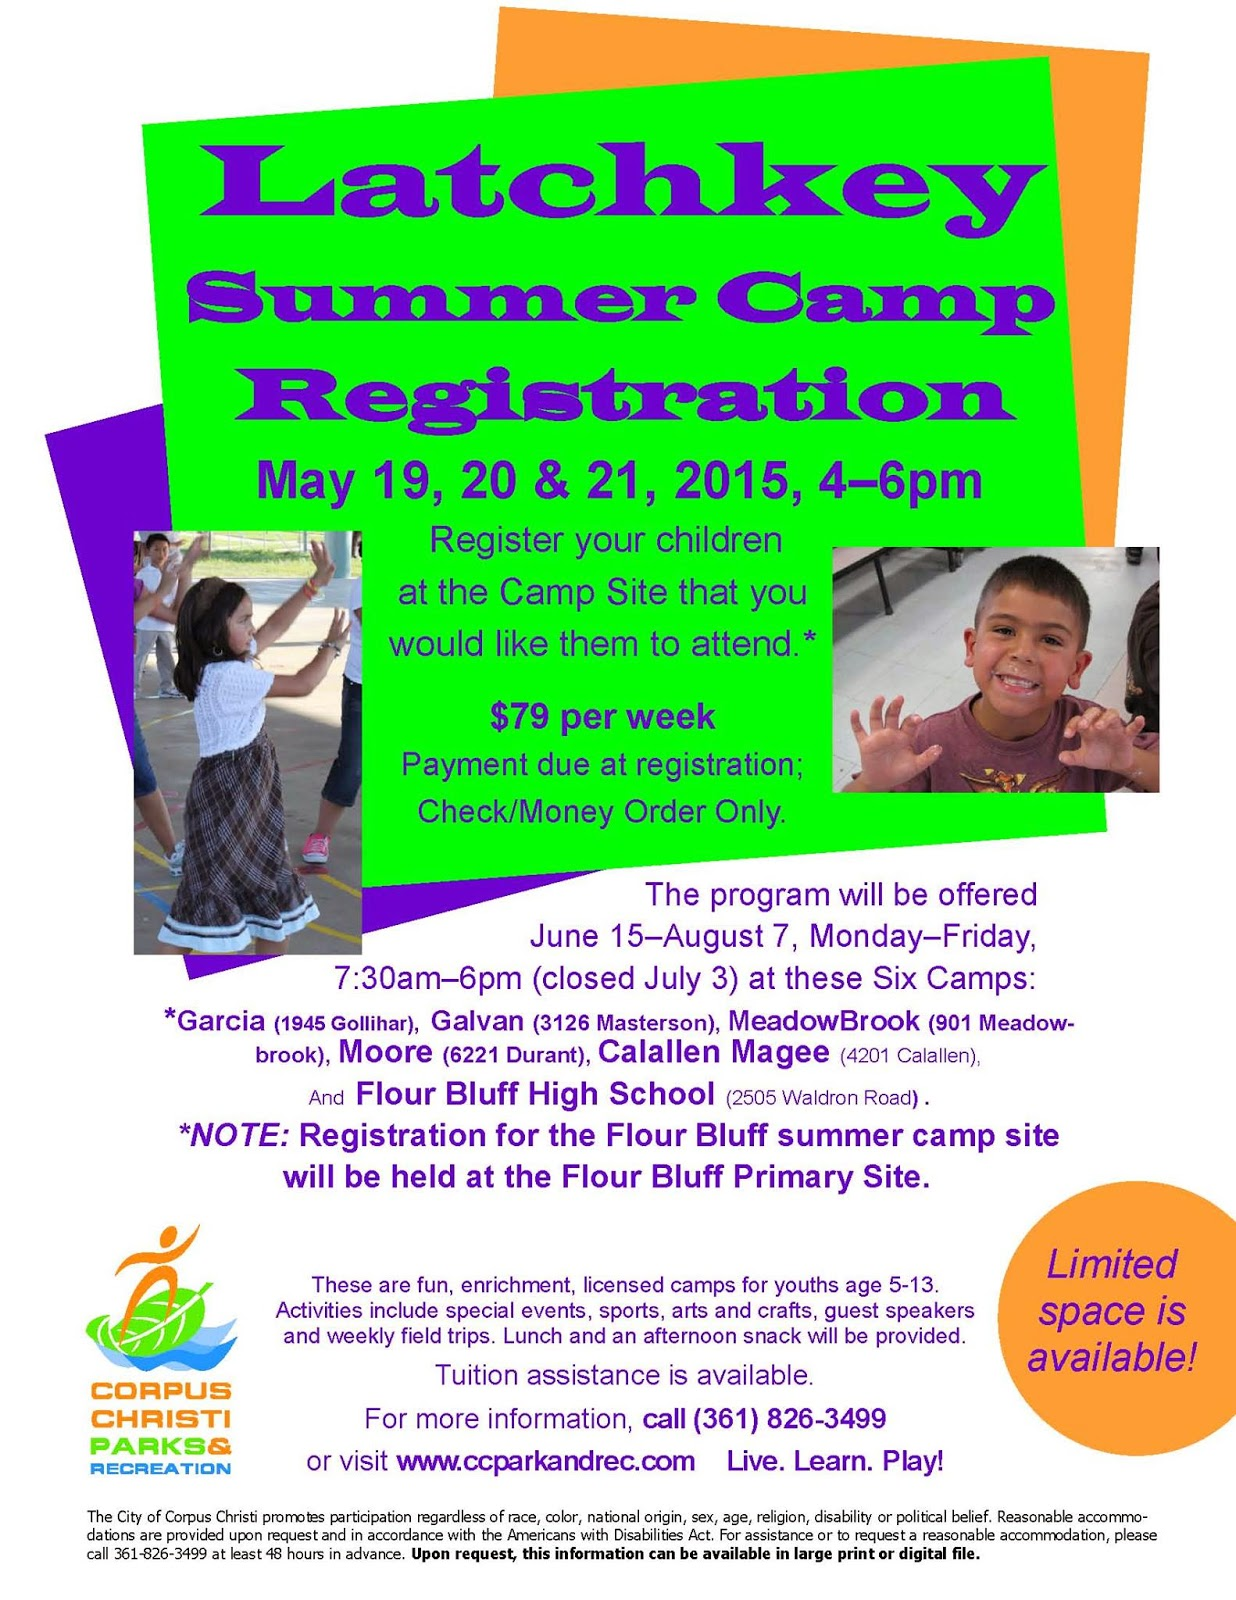 Corpus christi area summer camps 2015 corpus christi fun for kids must pay one week of tuition at the time of registration check or money order only on site for more information call 361 826 3499 or visit xflitez Gallery